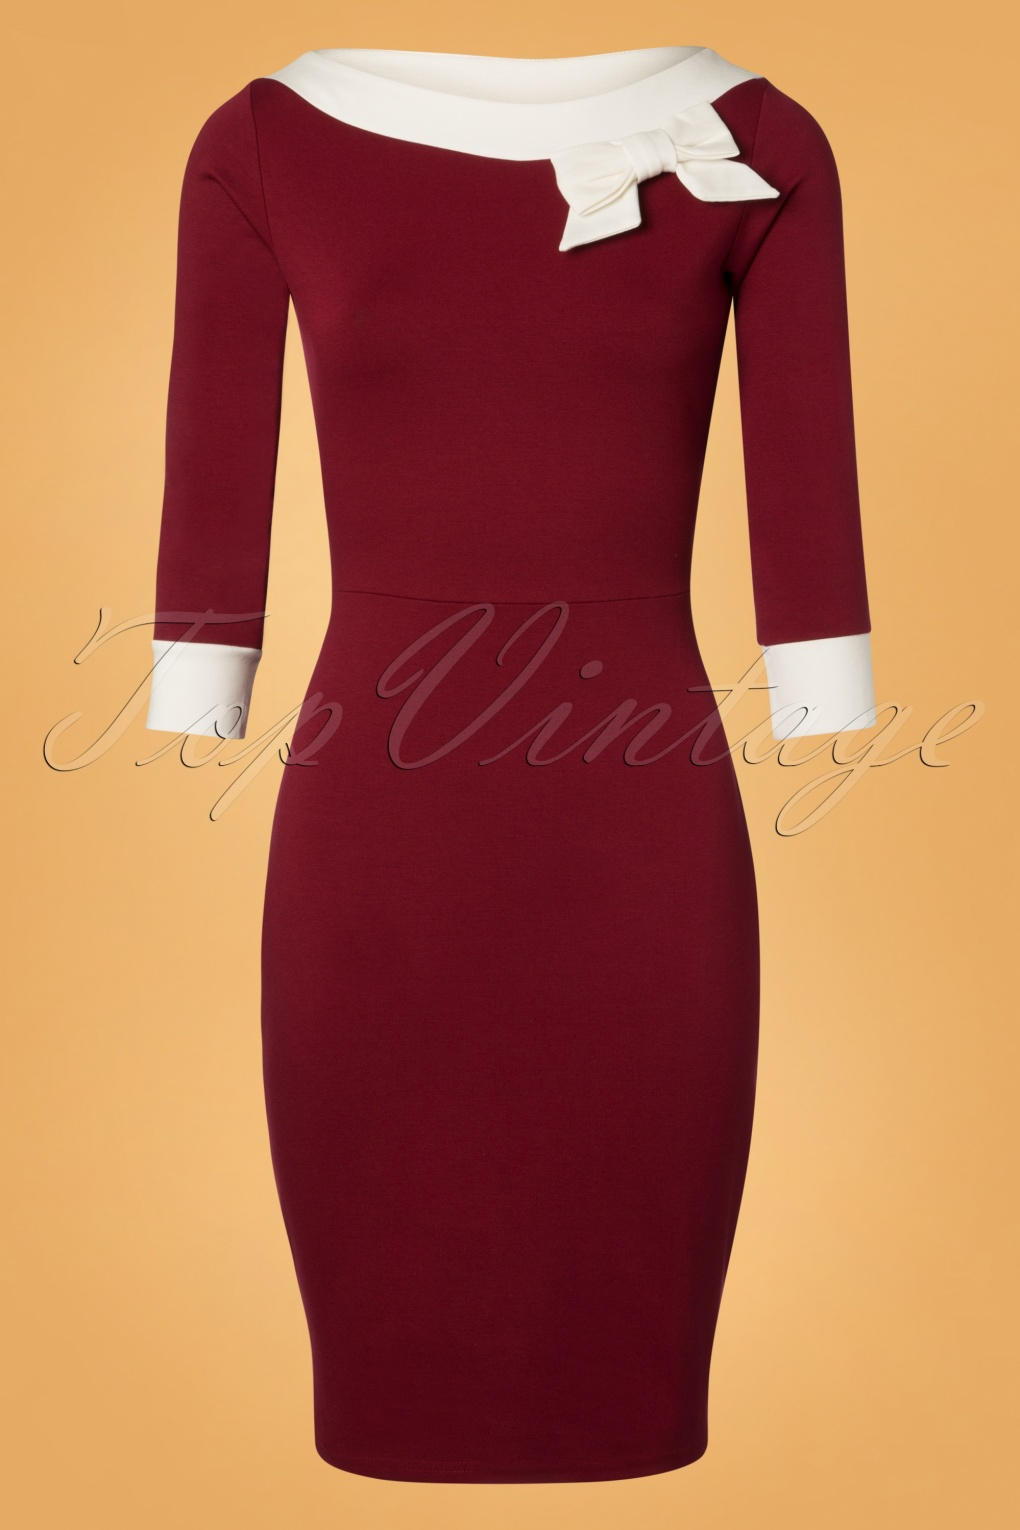 Vintage Christmas Dress | Party Dresses | Night Out Outfits 50s Dreamboat Dollie Wiggle Dress in Burgundy £60.89 AT vintagedancer.com